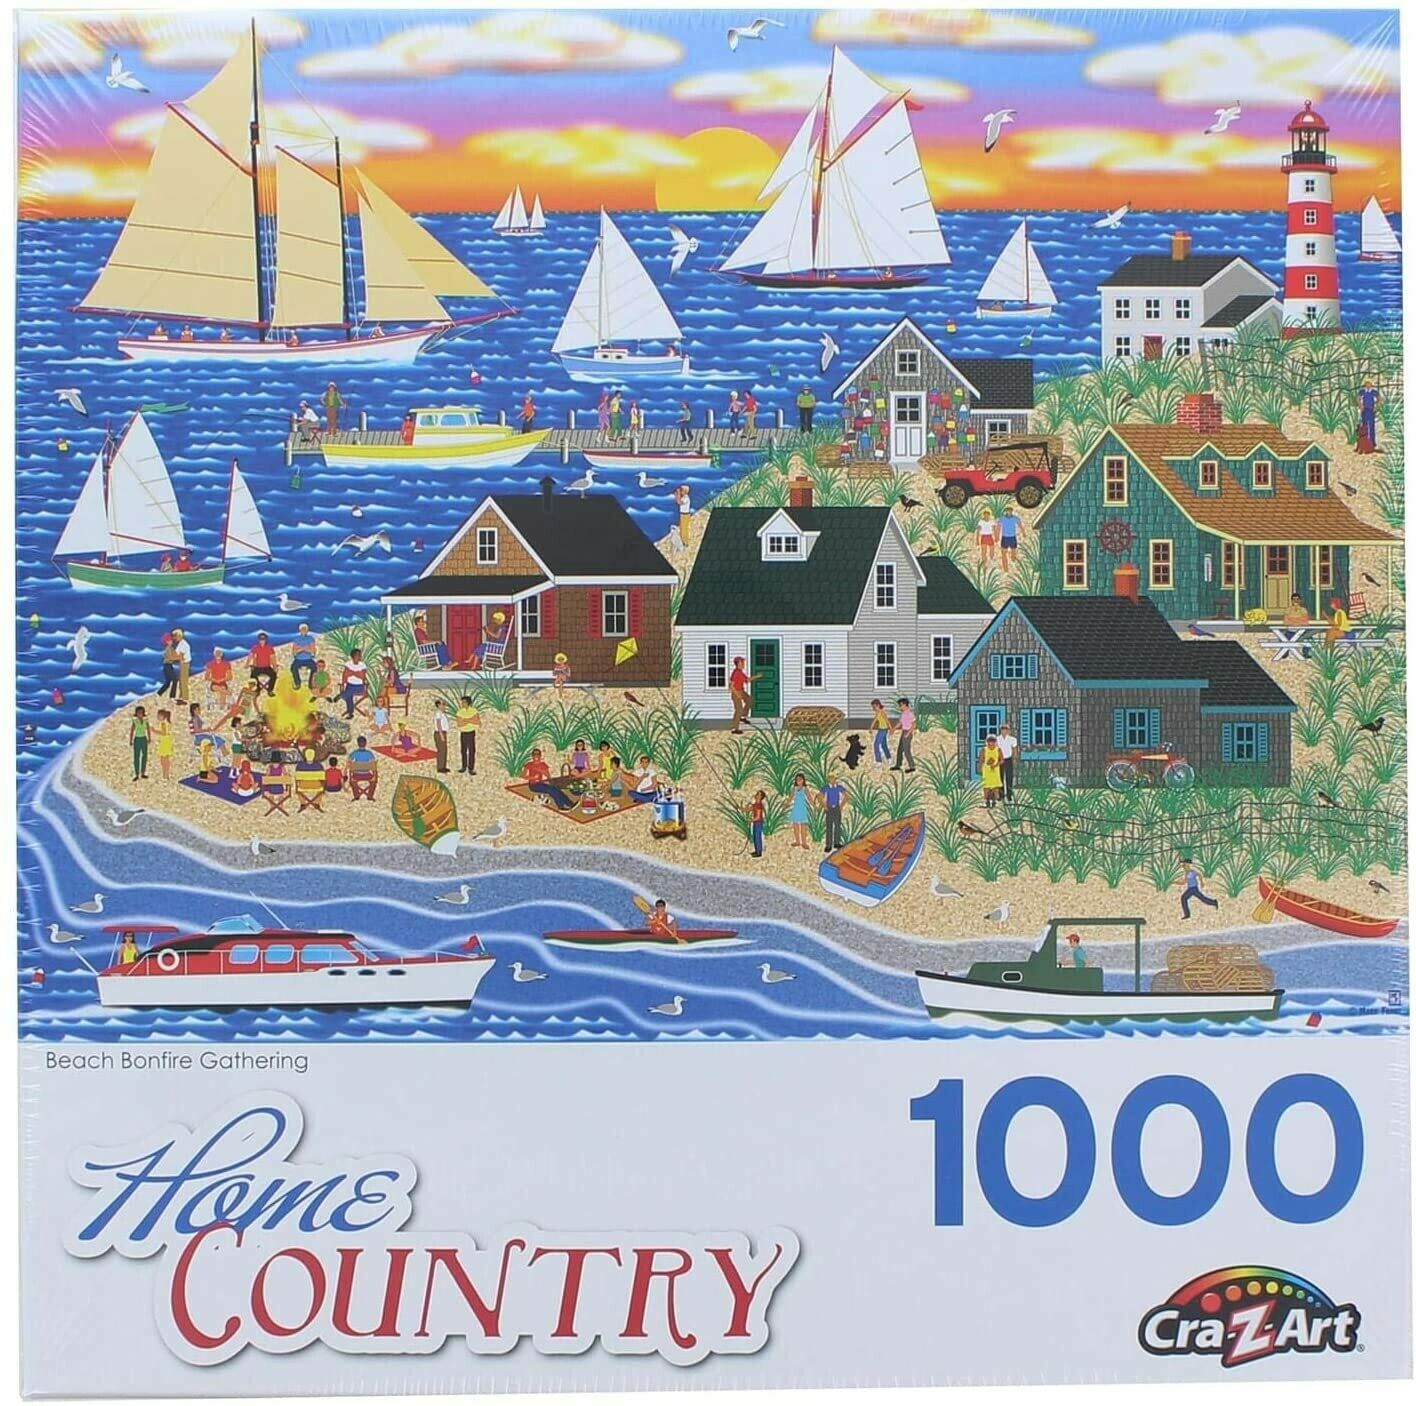 Beach Bonfire Gathering by Mark Frost 1000 Piece Puzzle